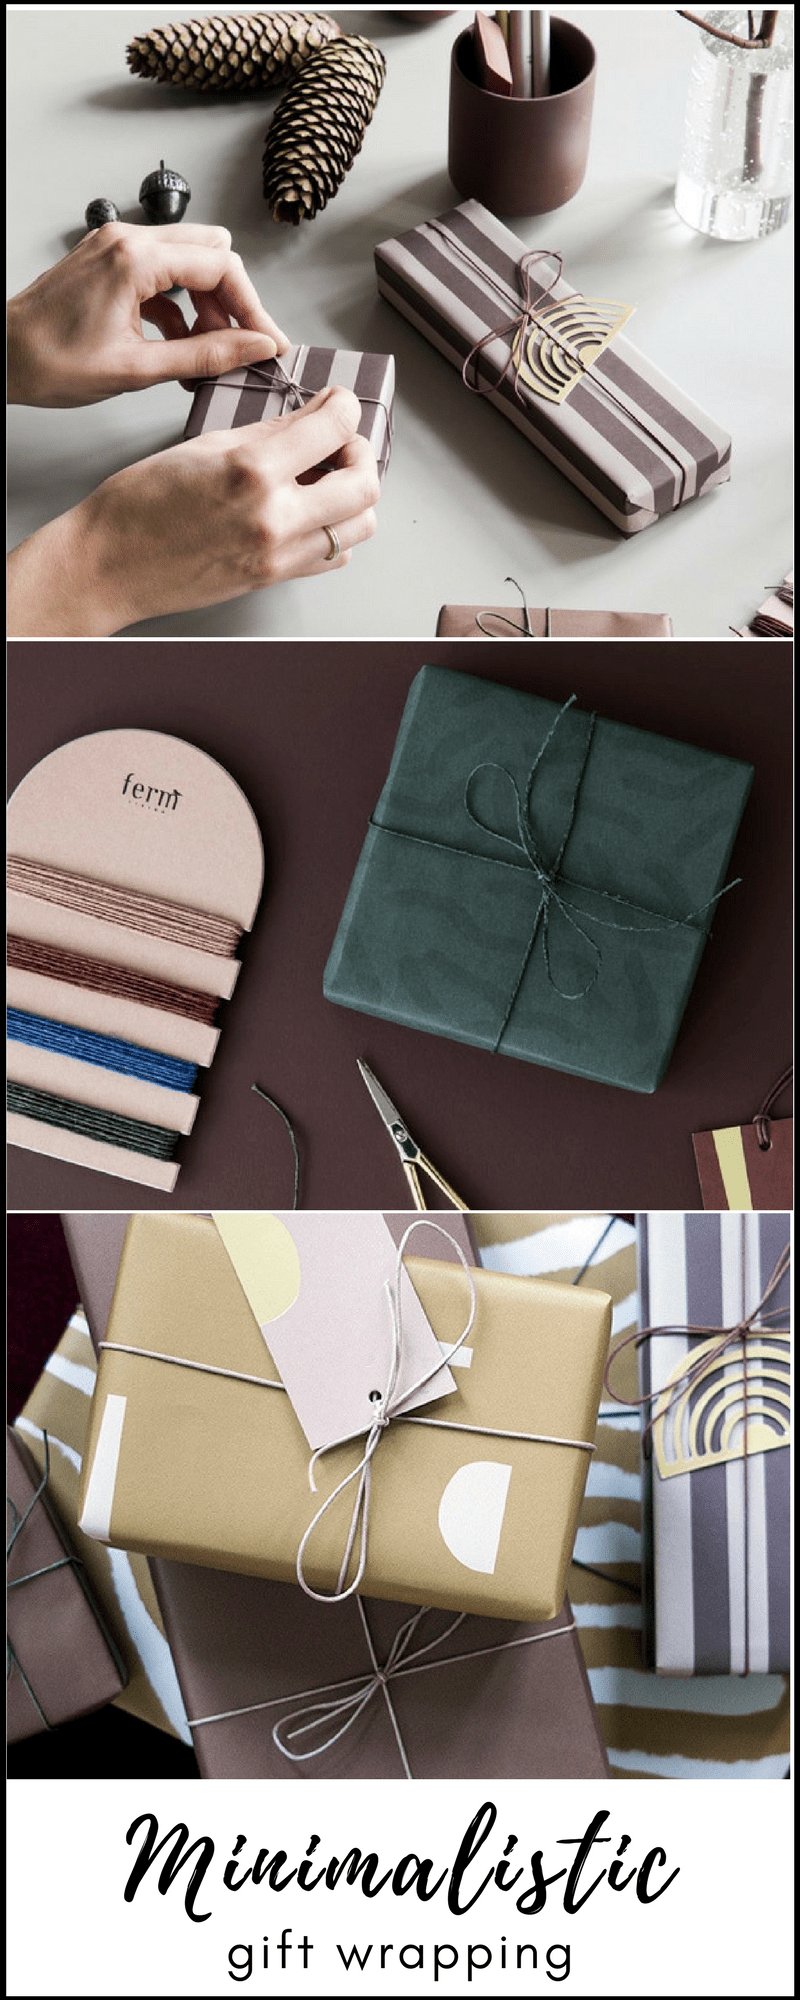 minimalistic gift wrapping ideas from Ferm Living